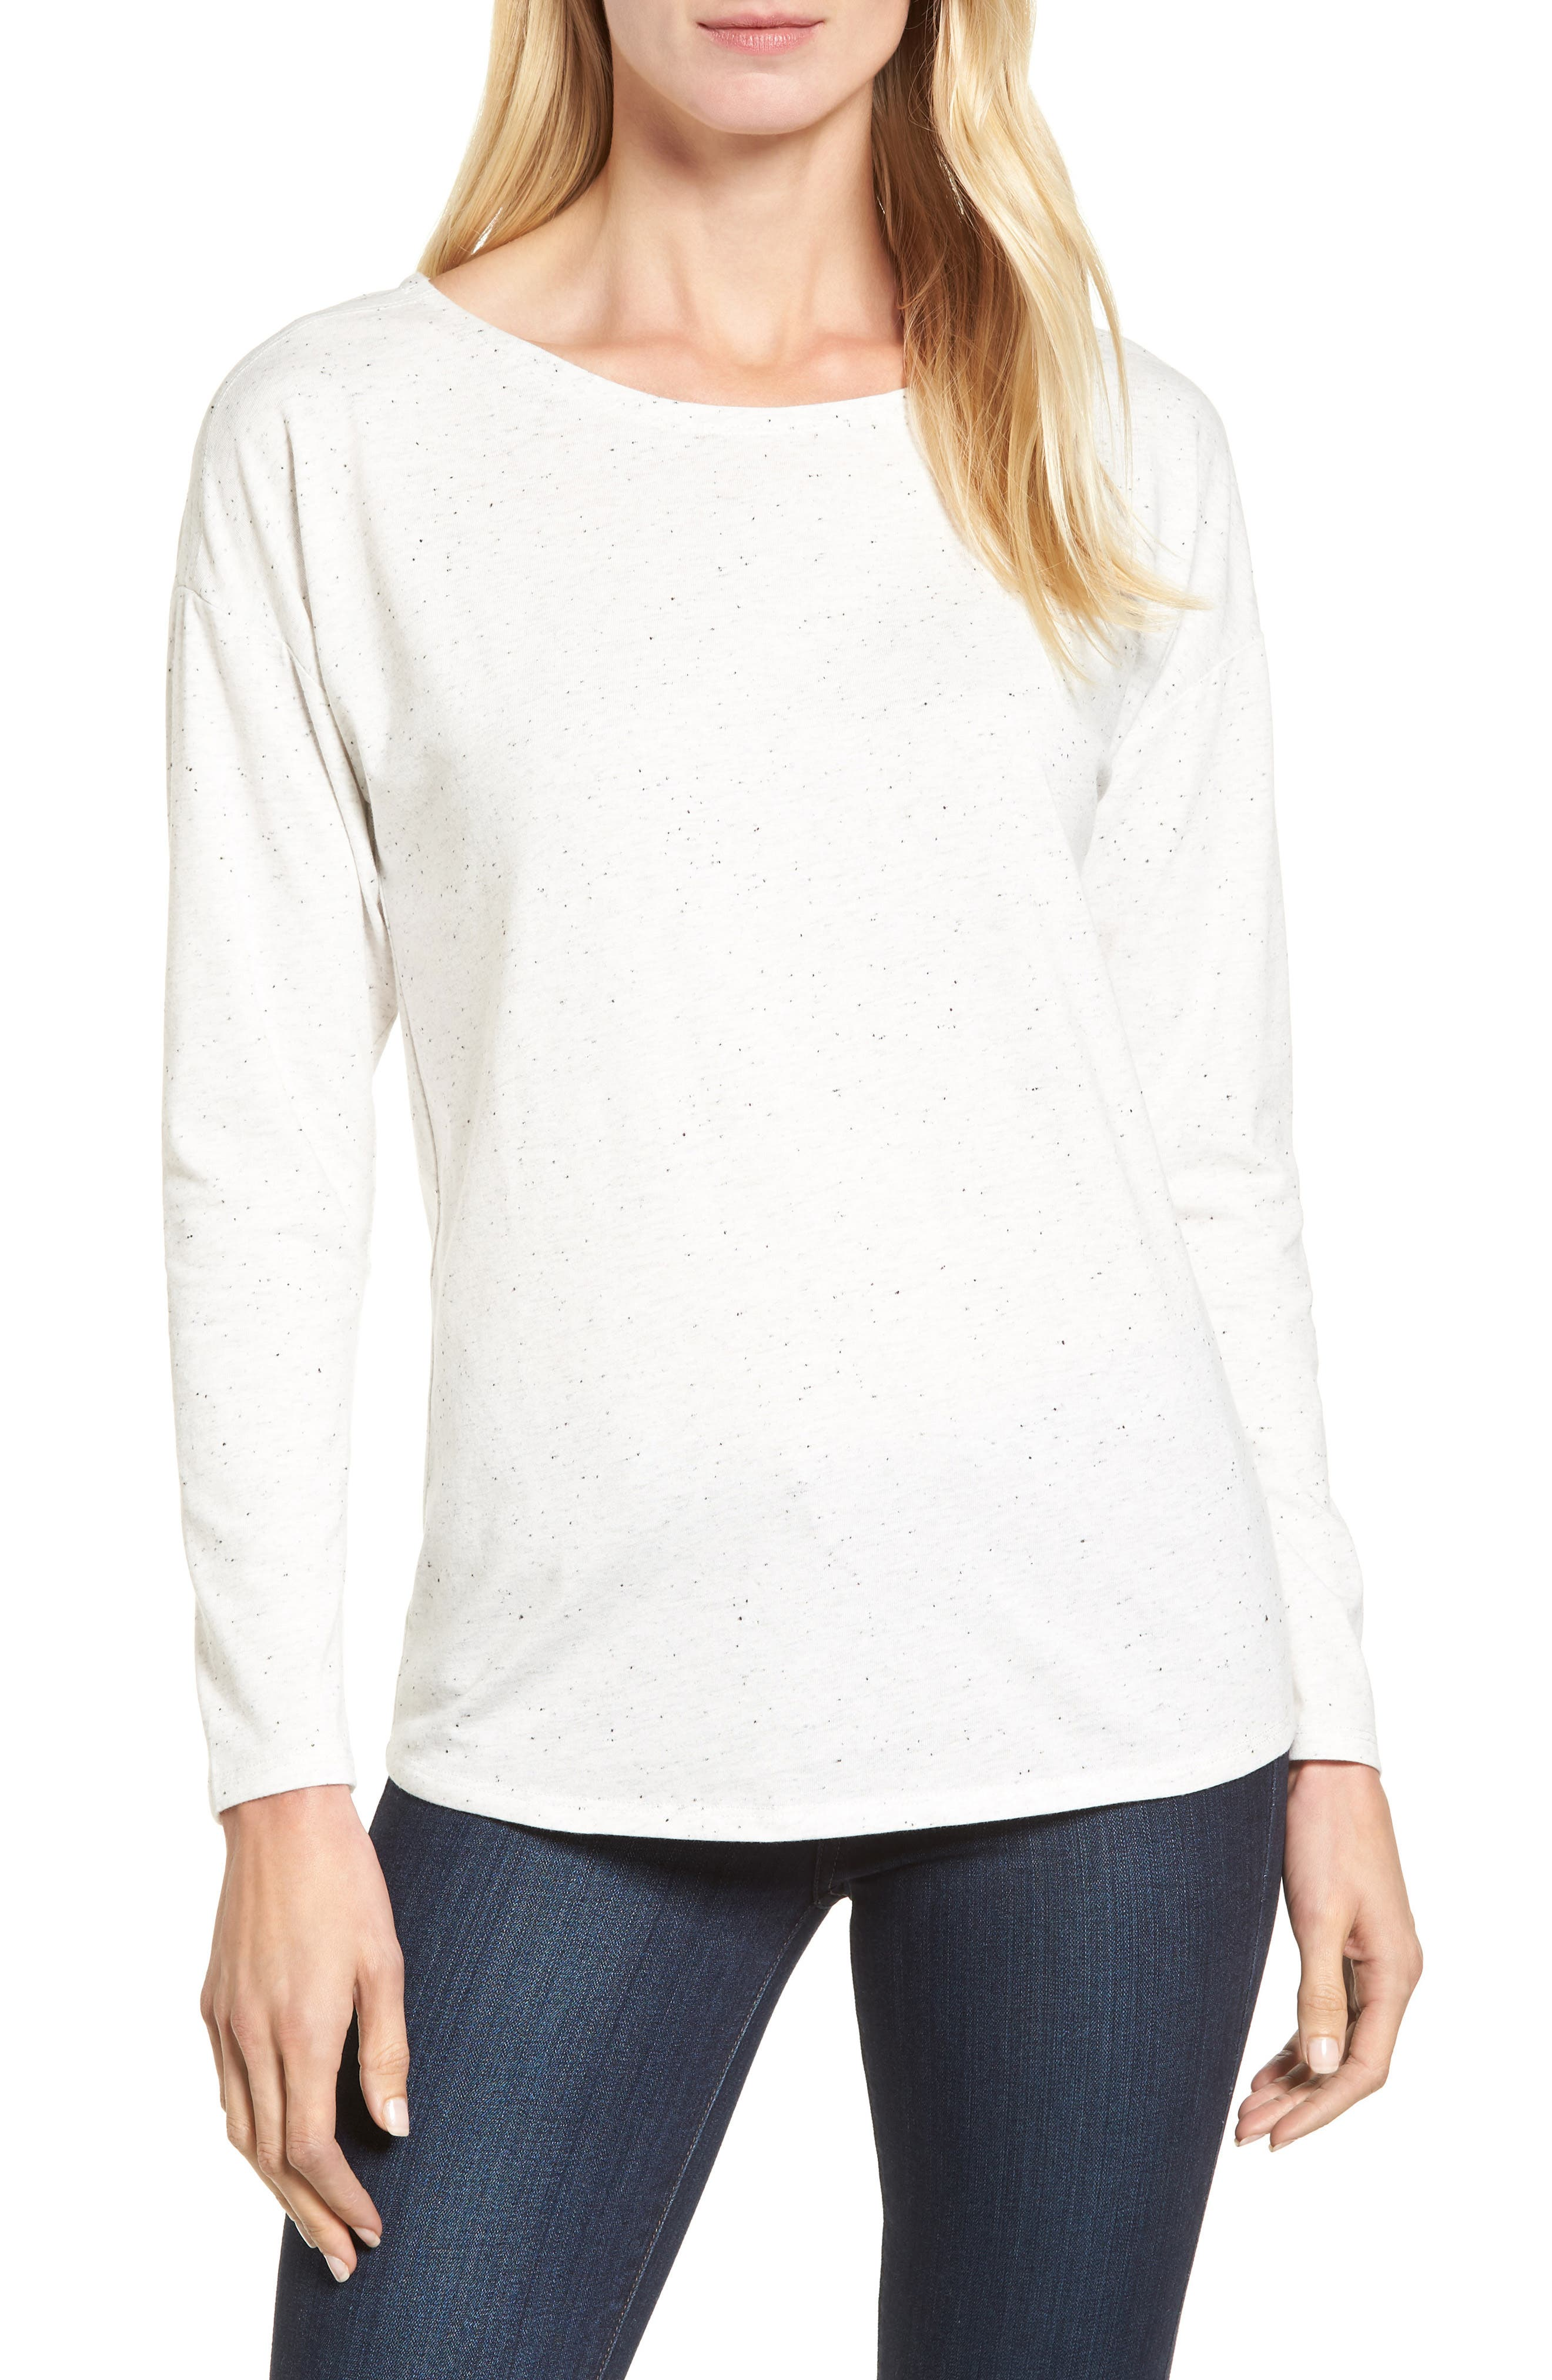 Alternate Image 1 Selected - NIC+ZOE Salt & Pepper Long Sleeve Top